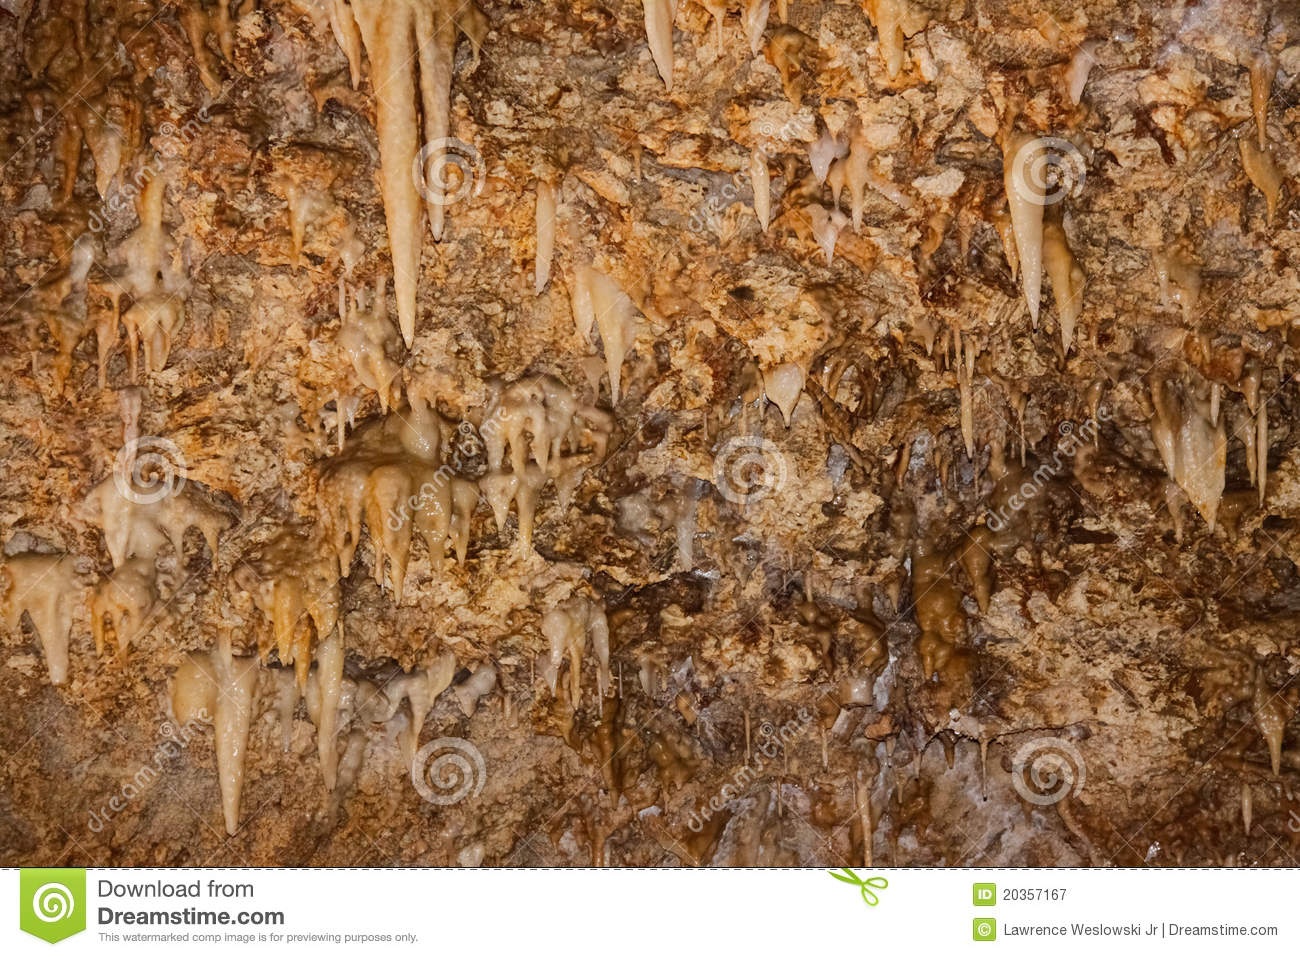 Barbados Harrison s Cave Thousands of Stalactites